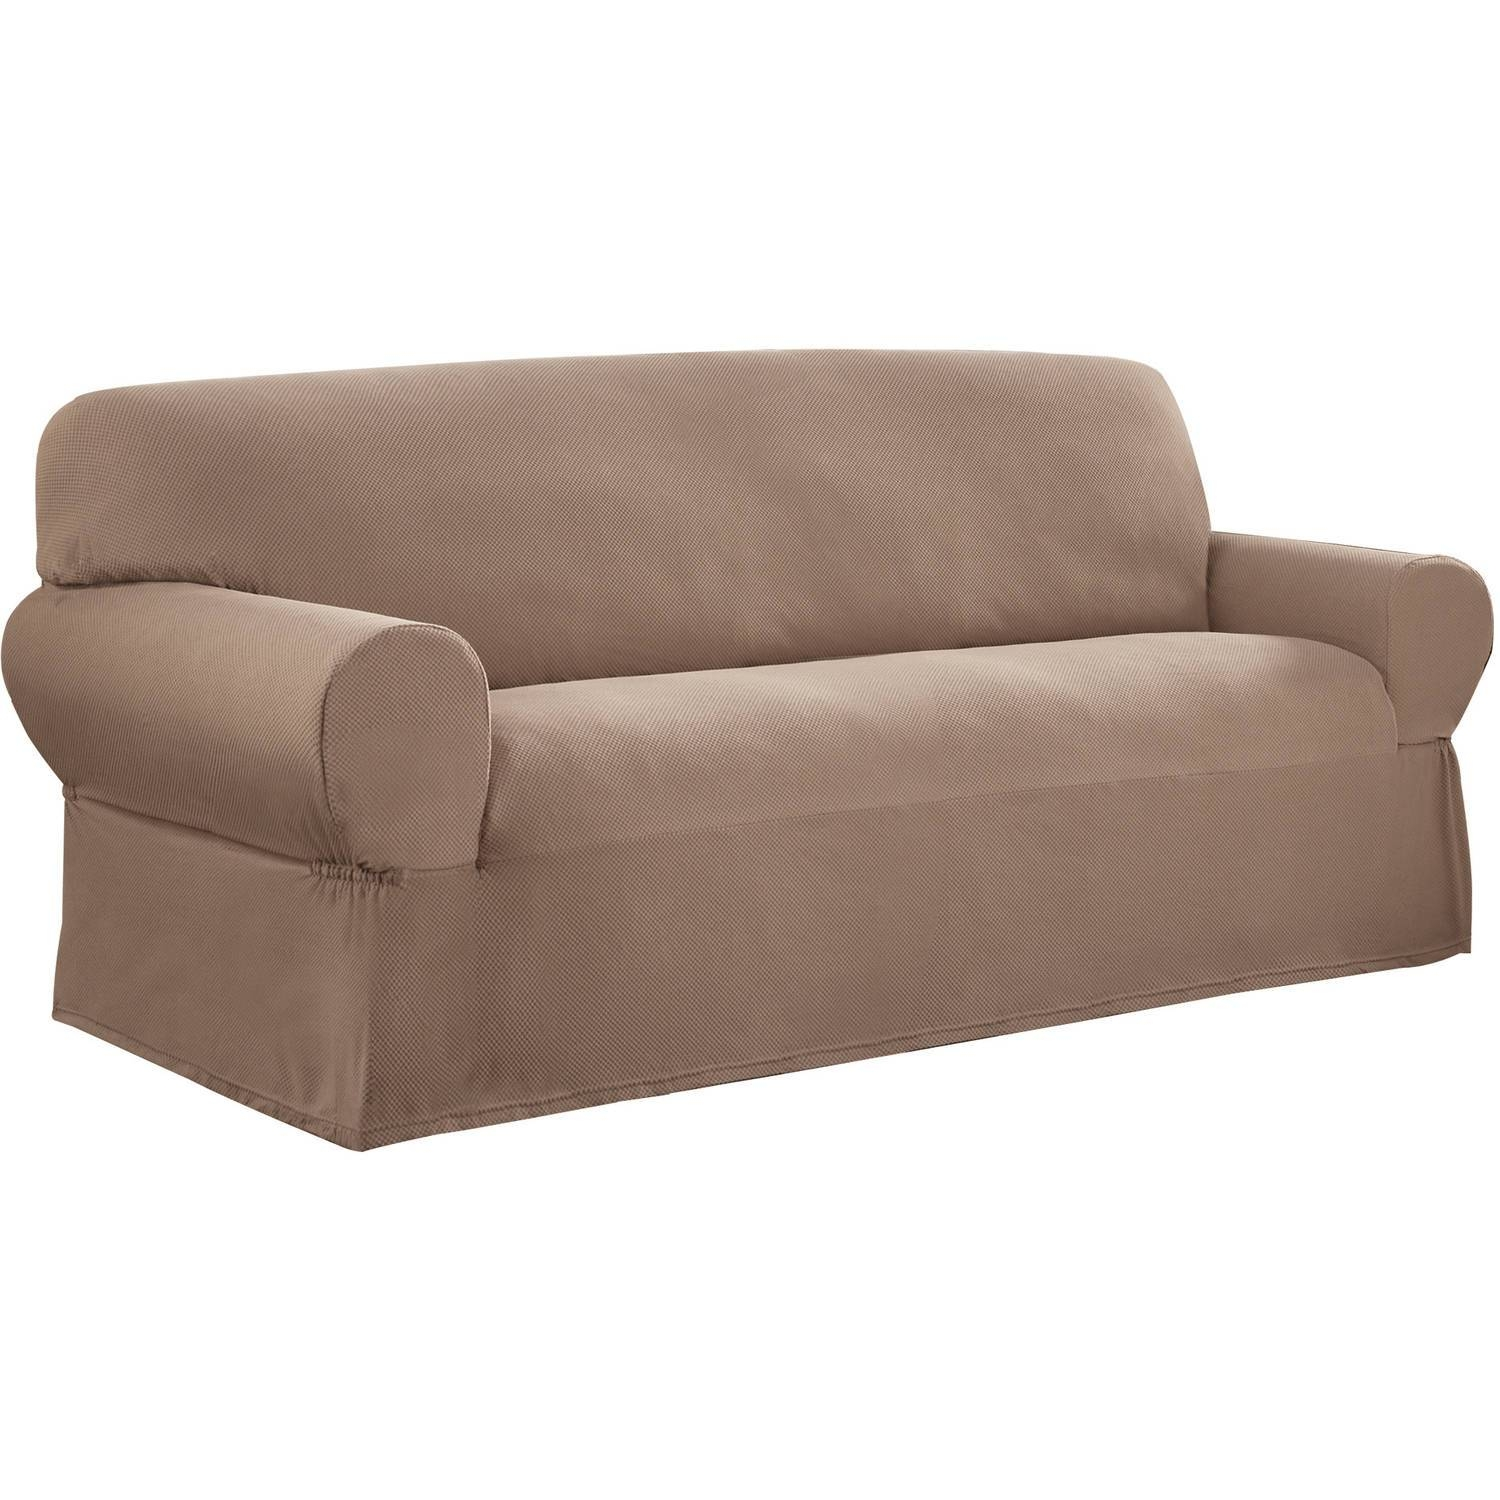 Serta Relaxed Fit Twill Furniture Slipcover, Sofa 1-Piece T throughout Armless Sofa Slipcovers (Image 7 of 15)